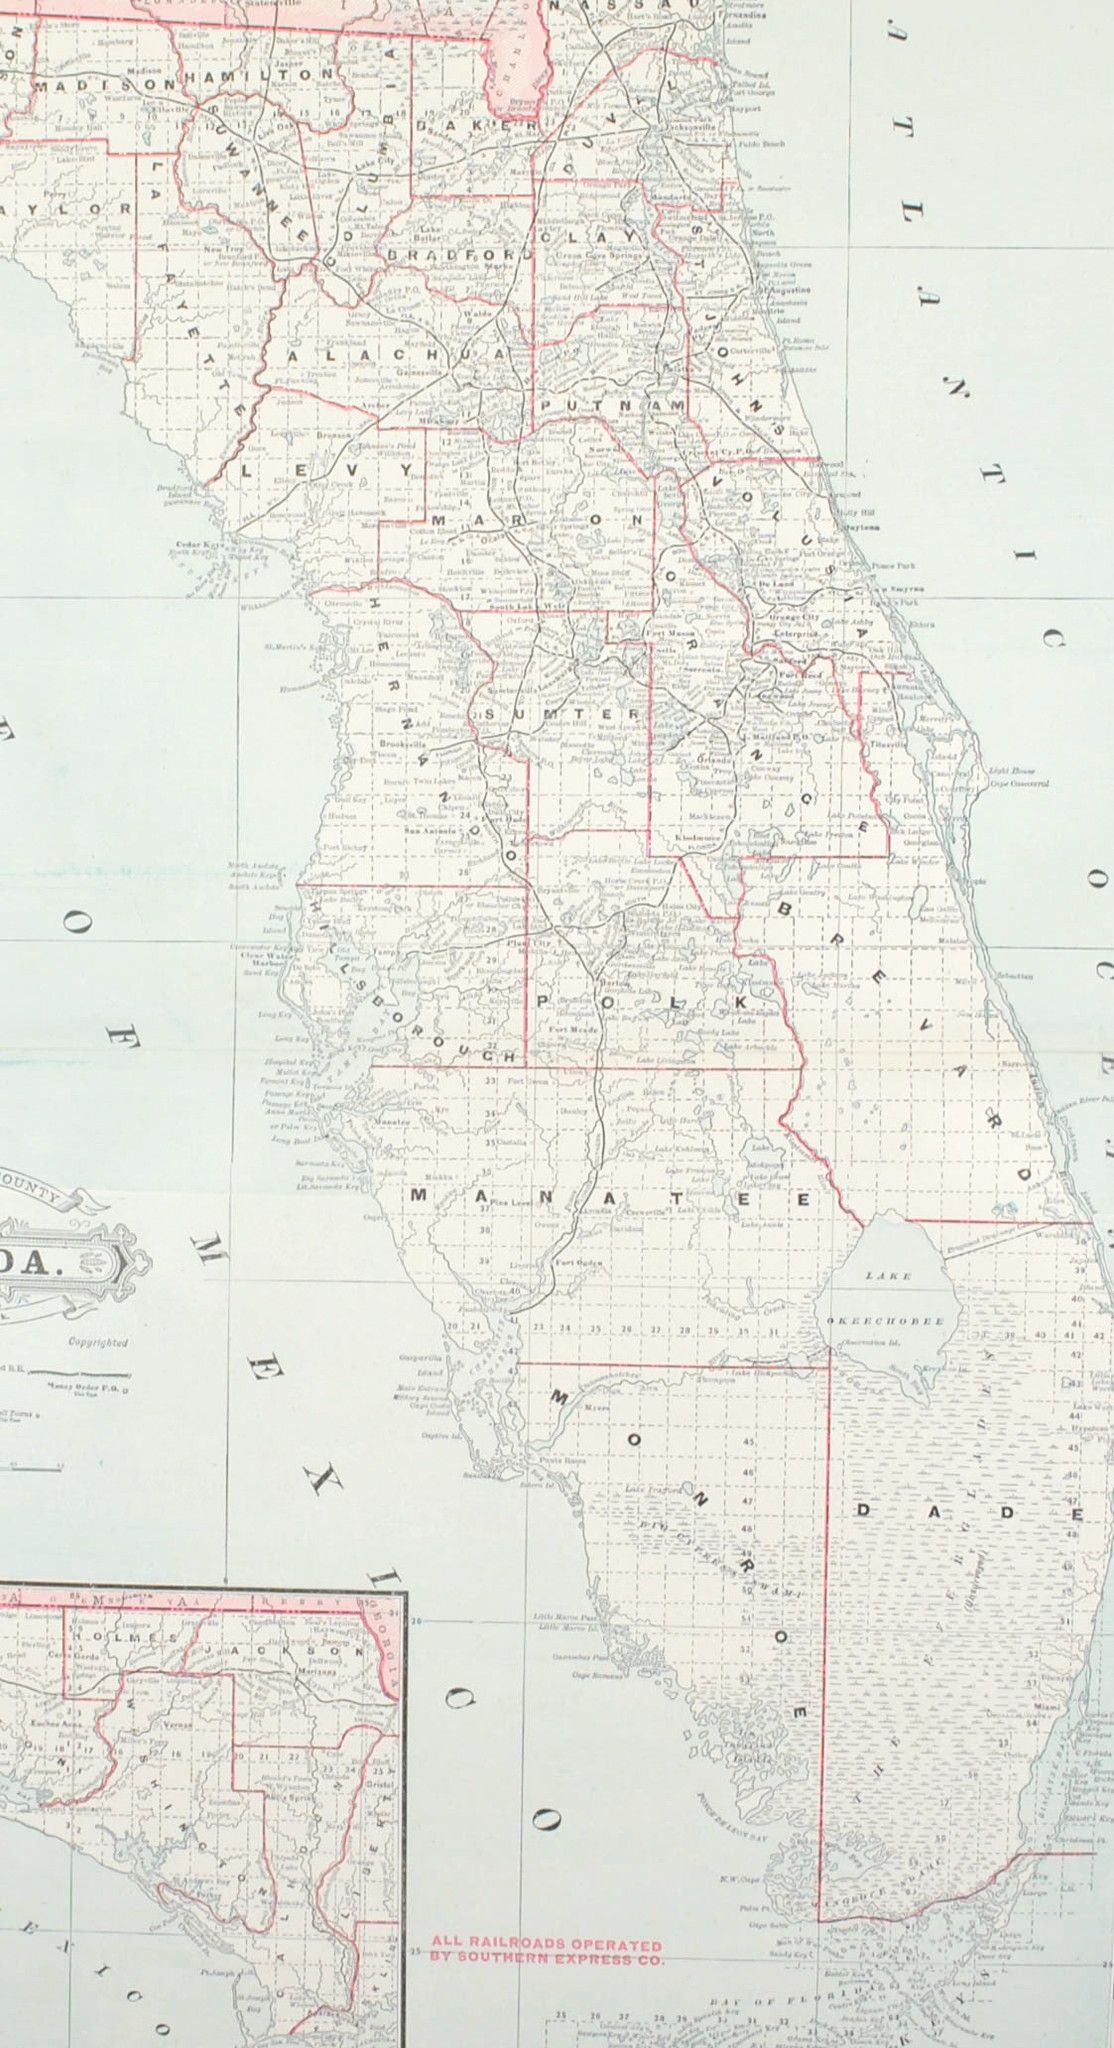 Florida Railroad Map.1887 Railroad And County Map Of Florida Products